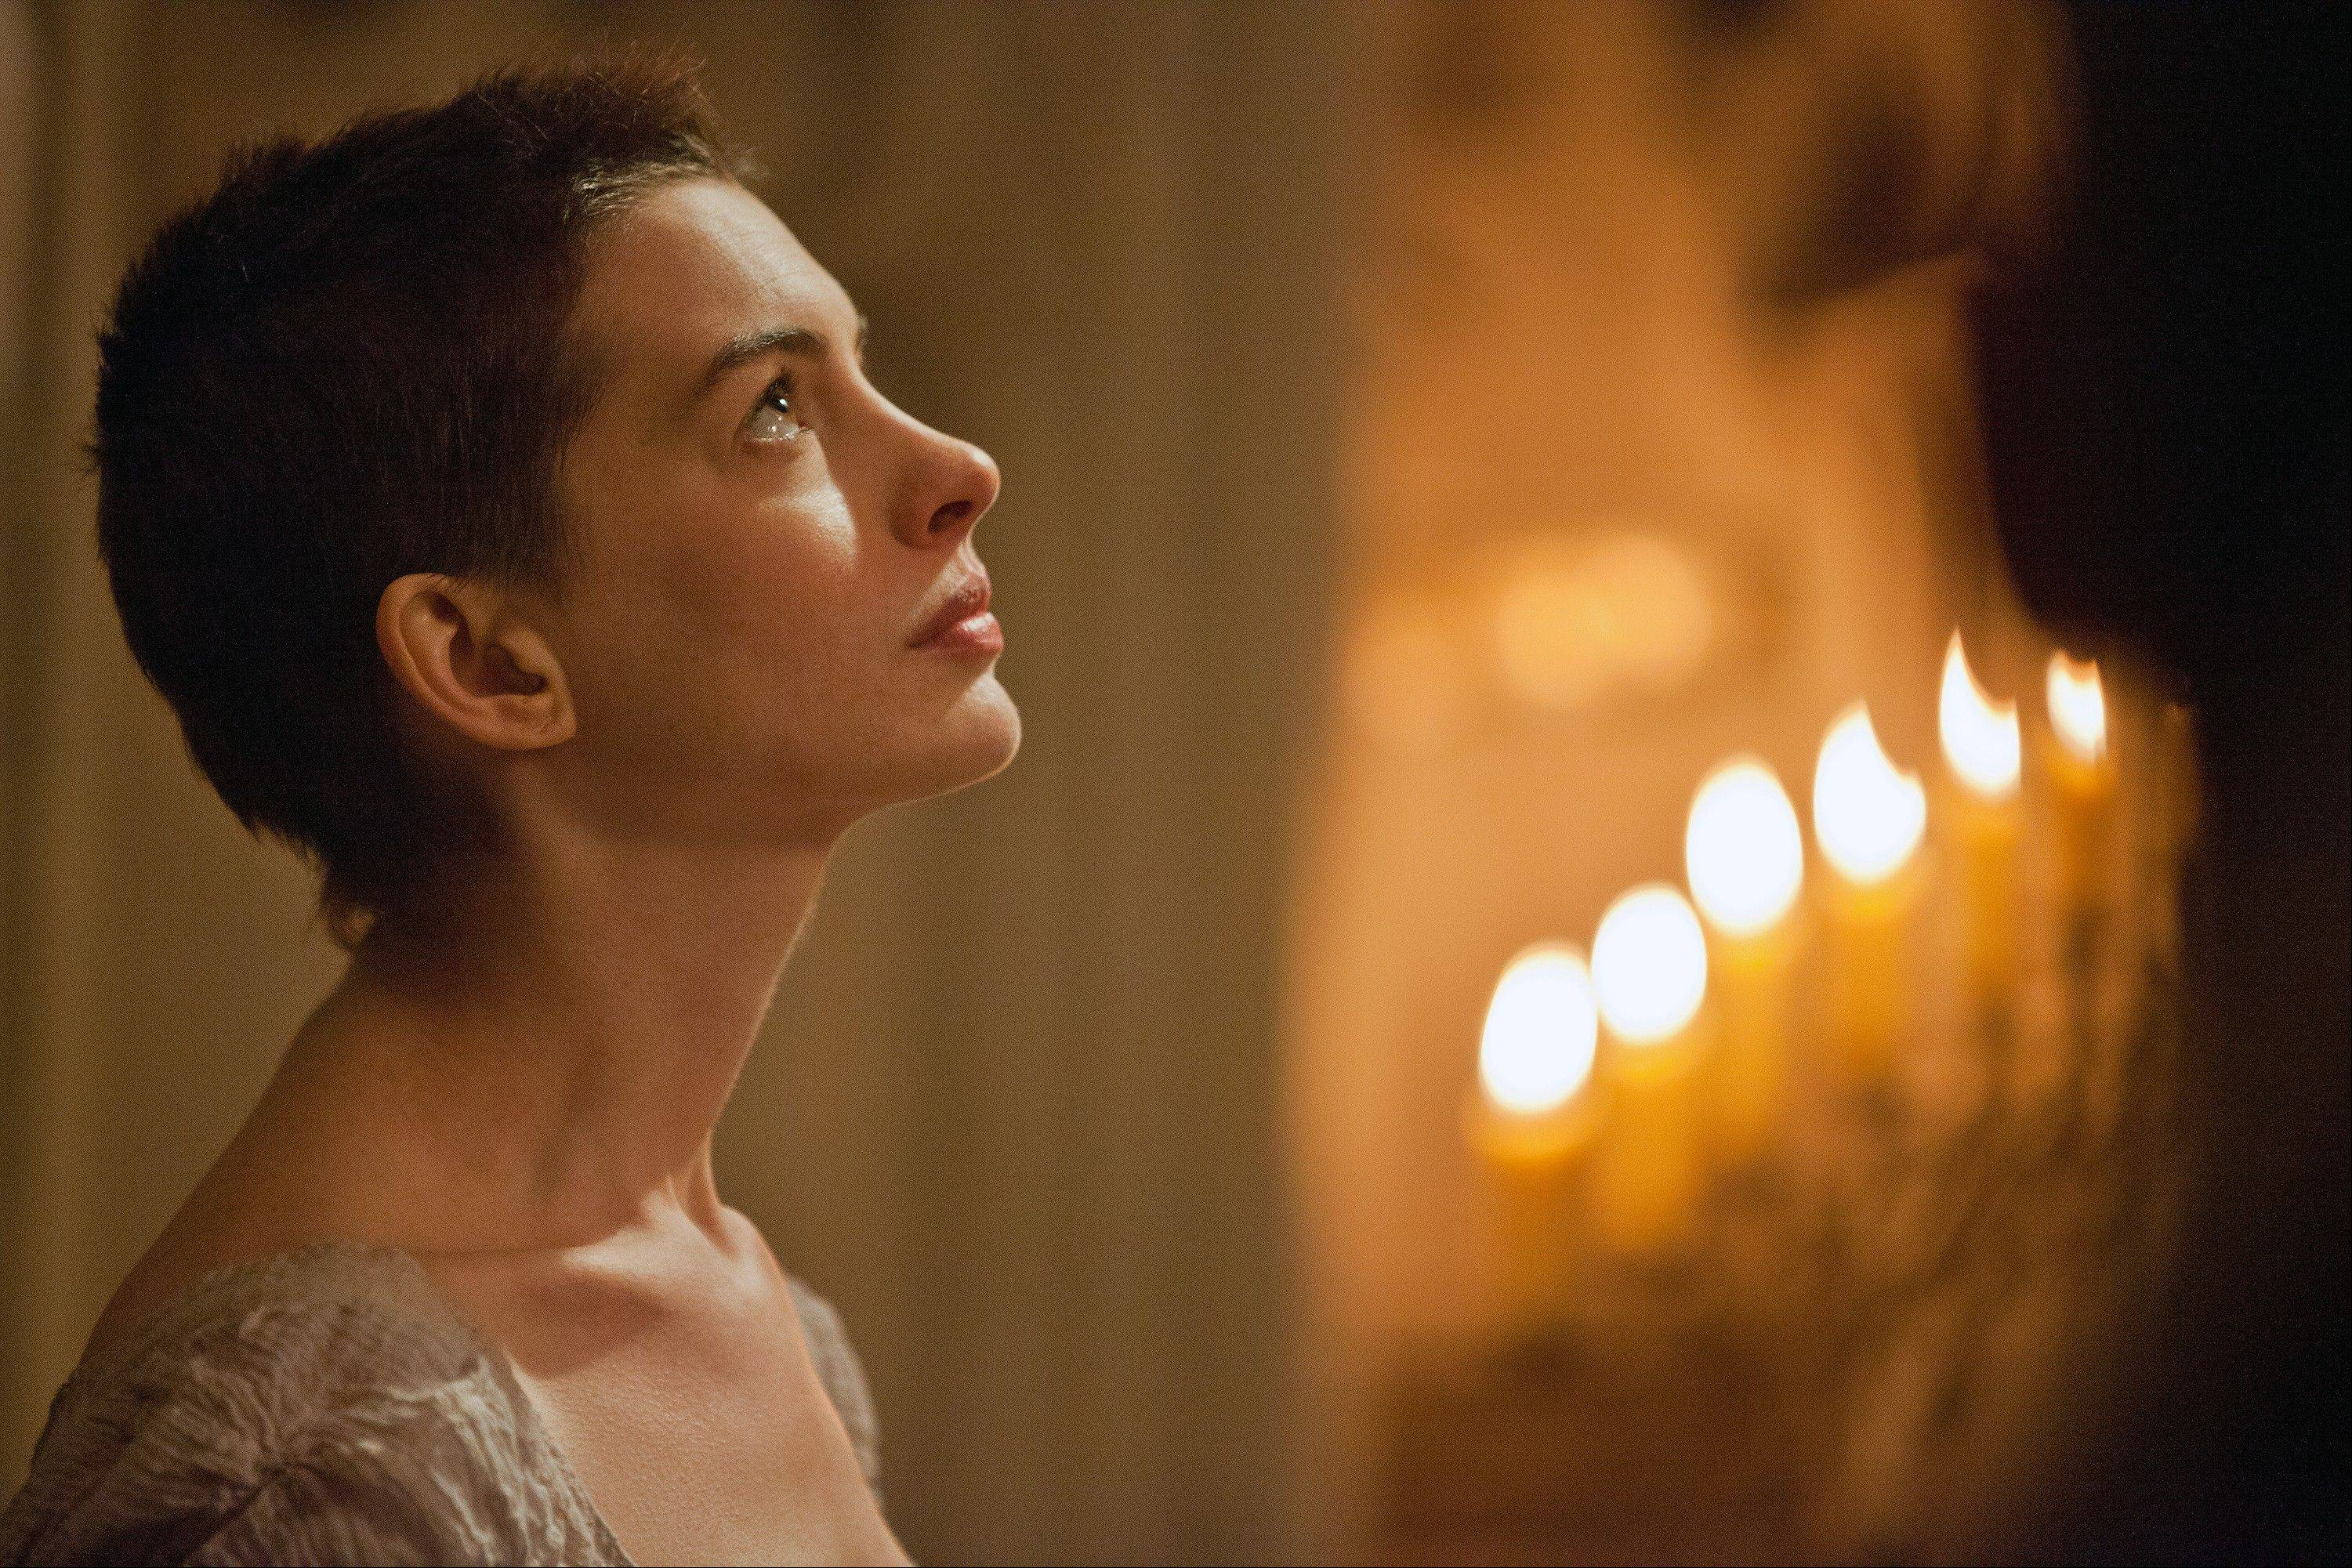 Anne Hathaway, who plays Fantine, a struggling, sickly mother forced into prostitution in 1800s Paris in �Les Miserables,� was nominated for an Academy Award for best supporting actress for her role in the film.